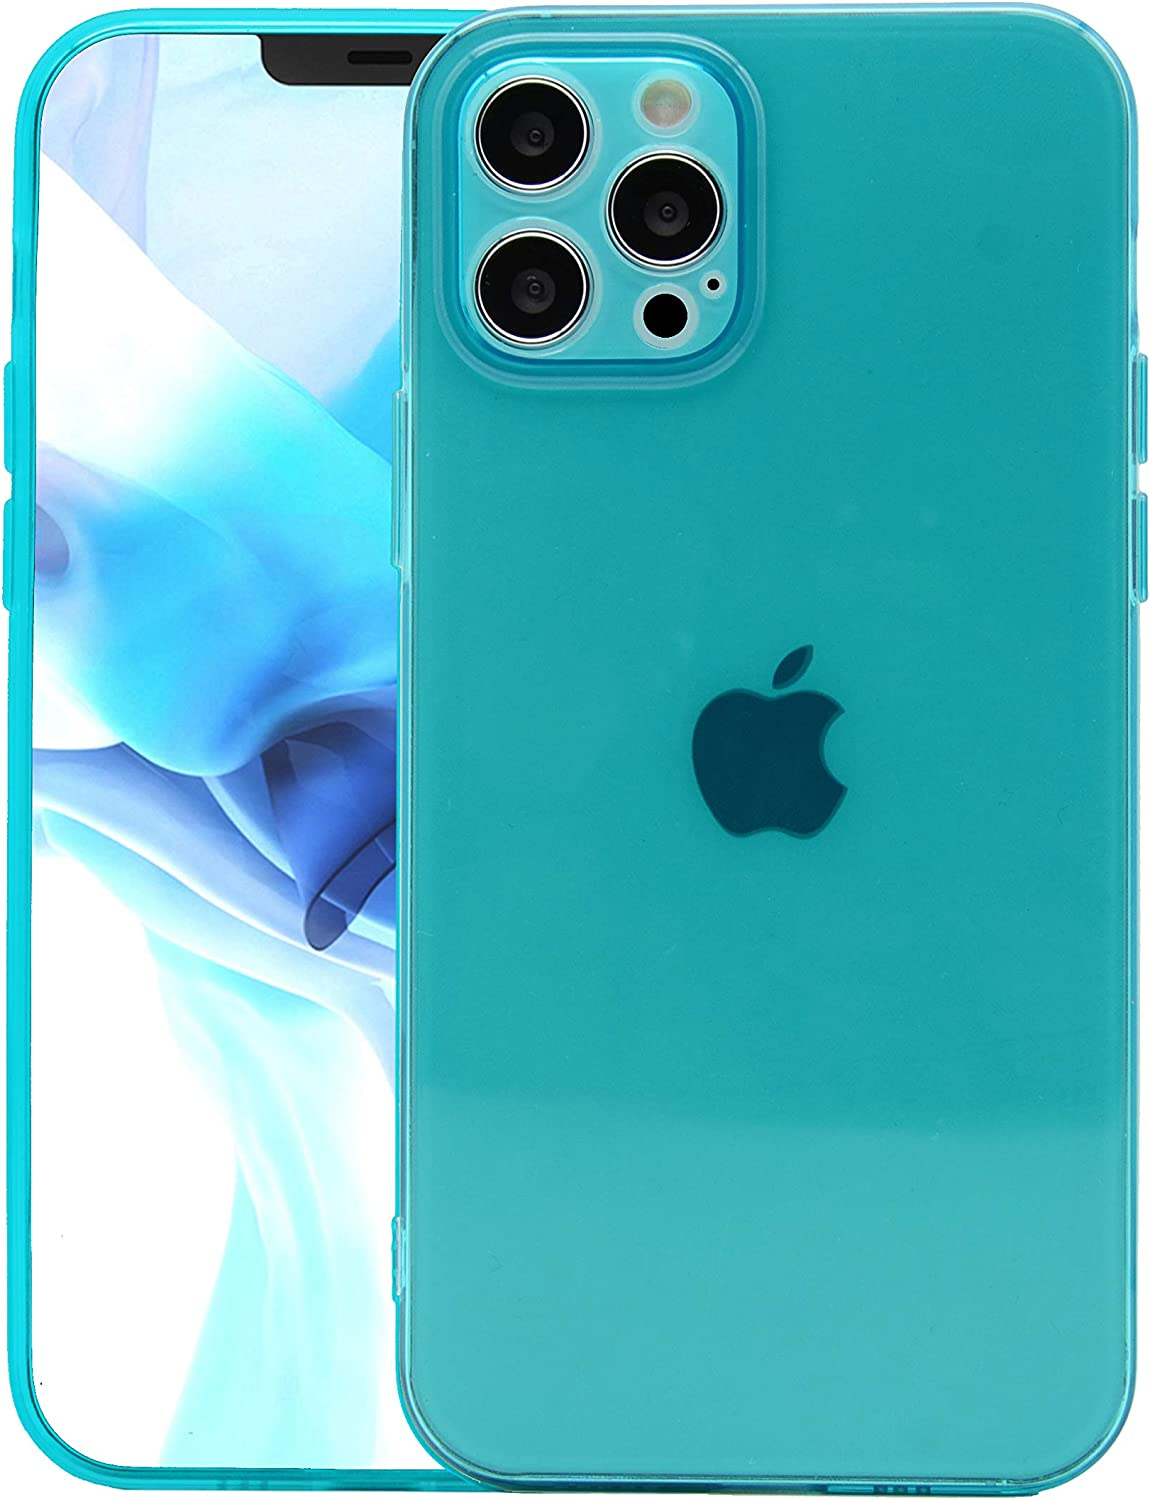 GRECAZO Clear Neon Designed Phone Case for iPhone 12 Pro(2020) 6.1